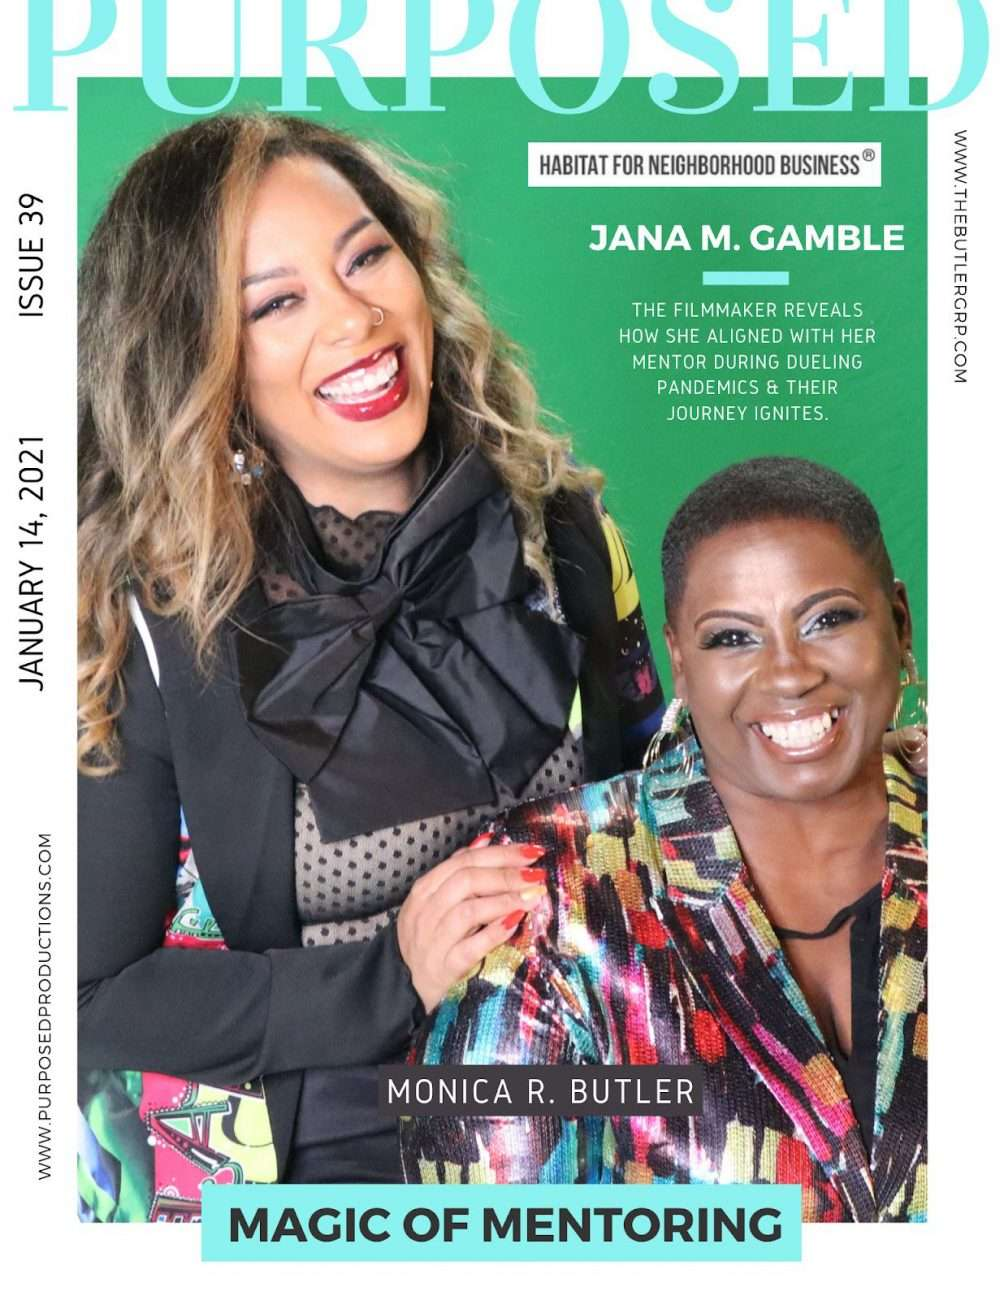 Fun Birthday Magazine Cover Featuring Mentor & Mentee for Jana's Birthday on January 14th. Photo credit Purposed Productions via Saint Louis University Service Leadership Student Alyssa Jimenez.